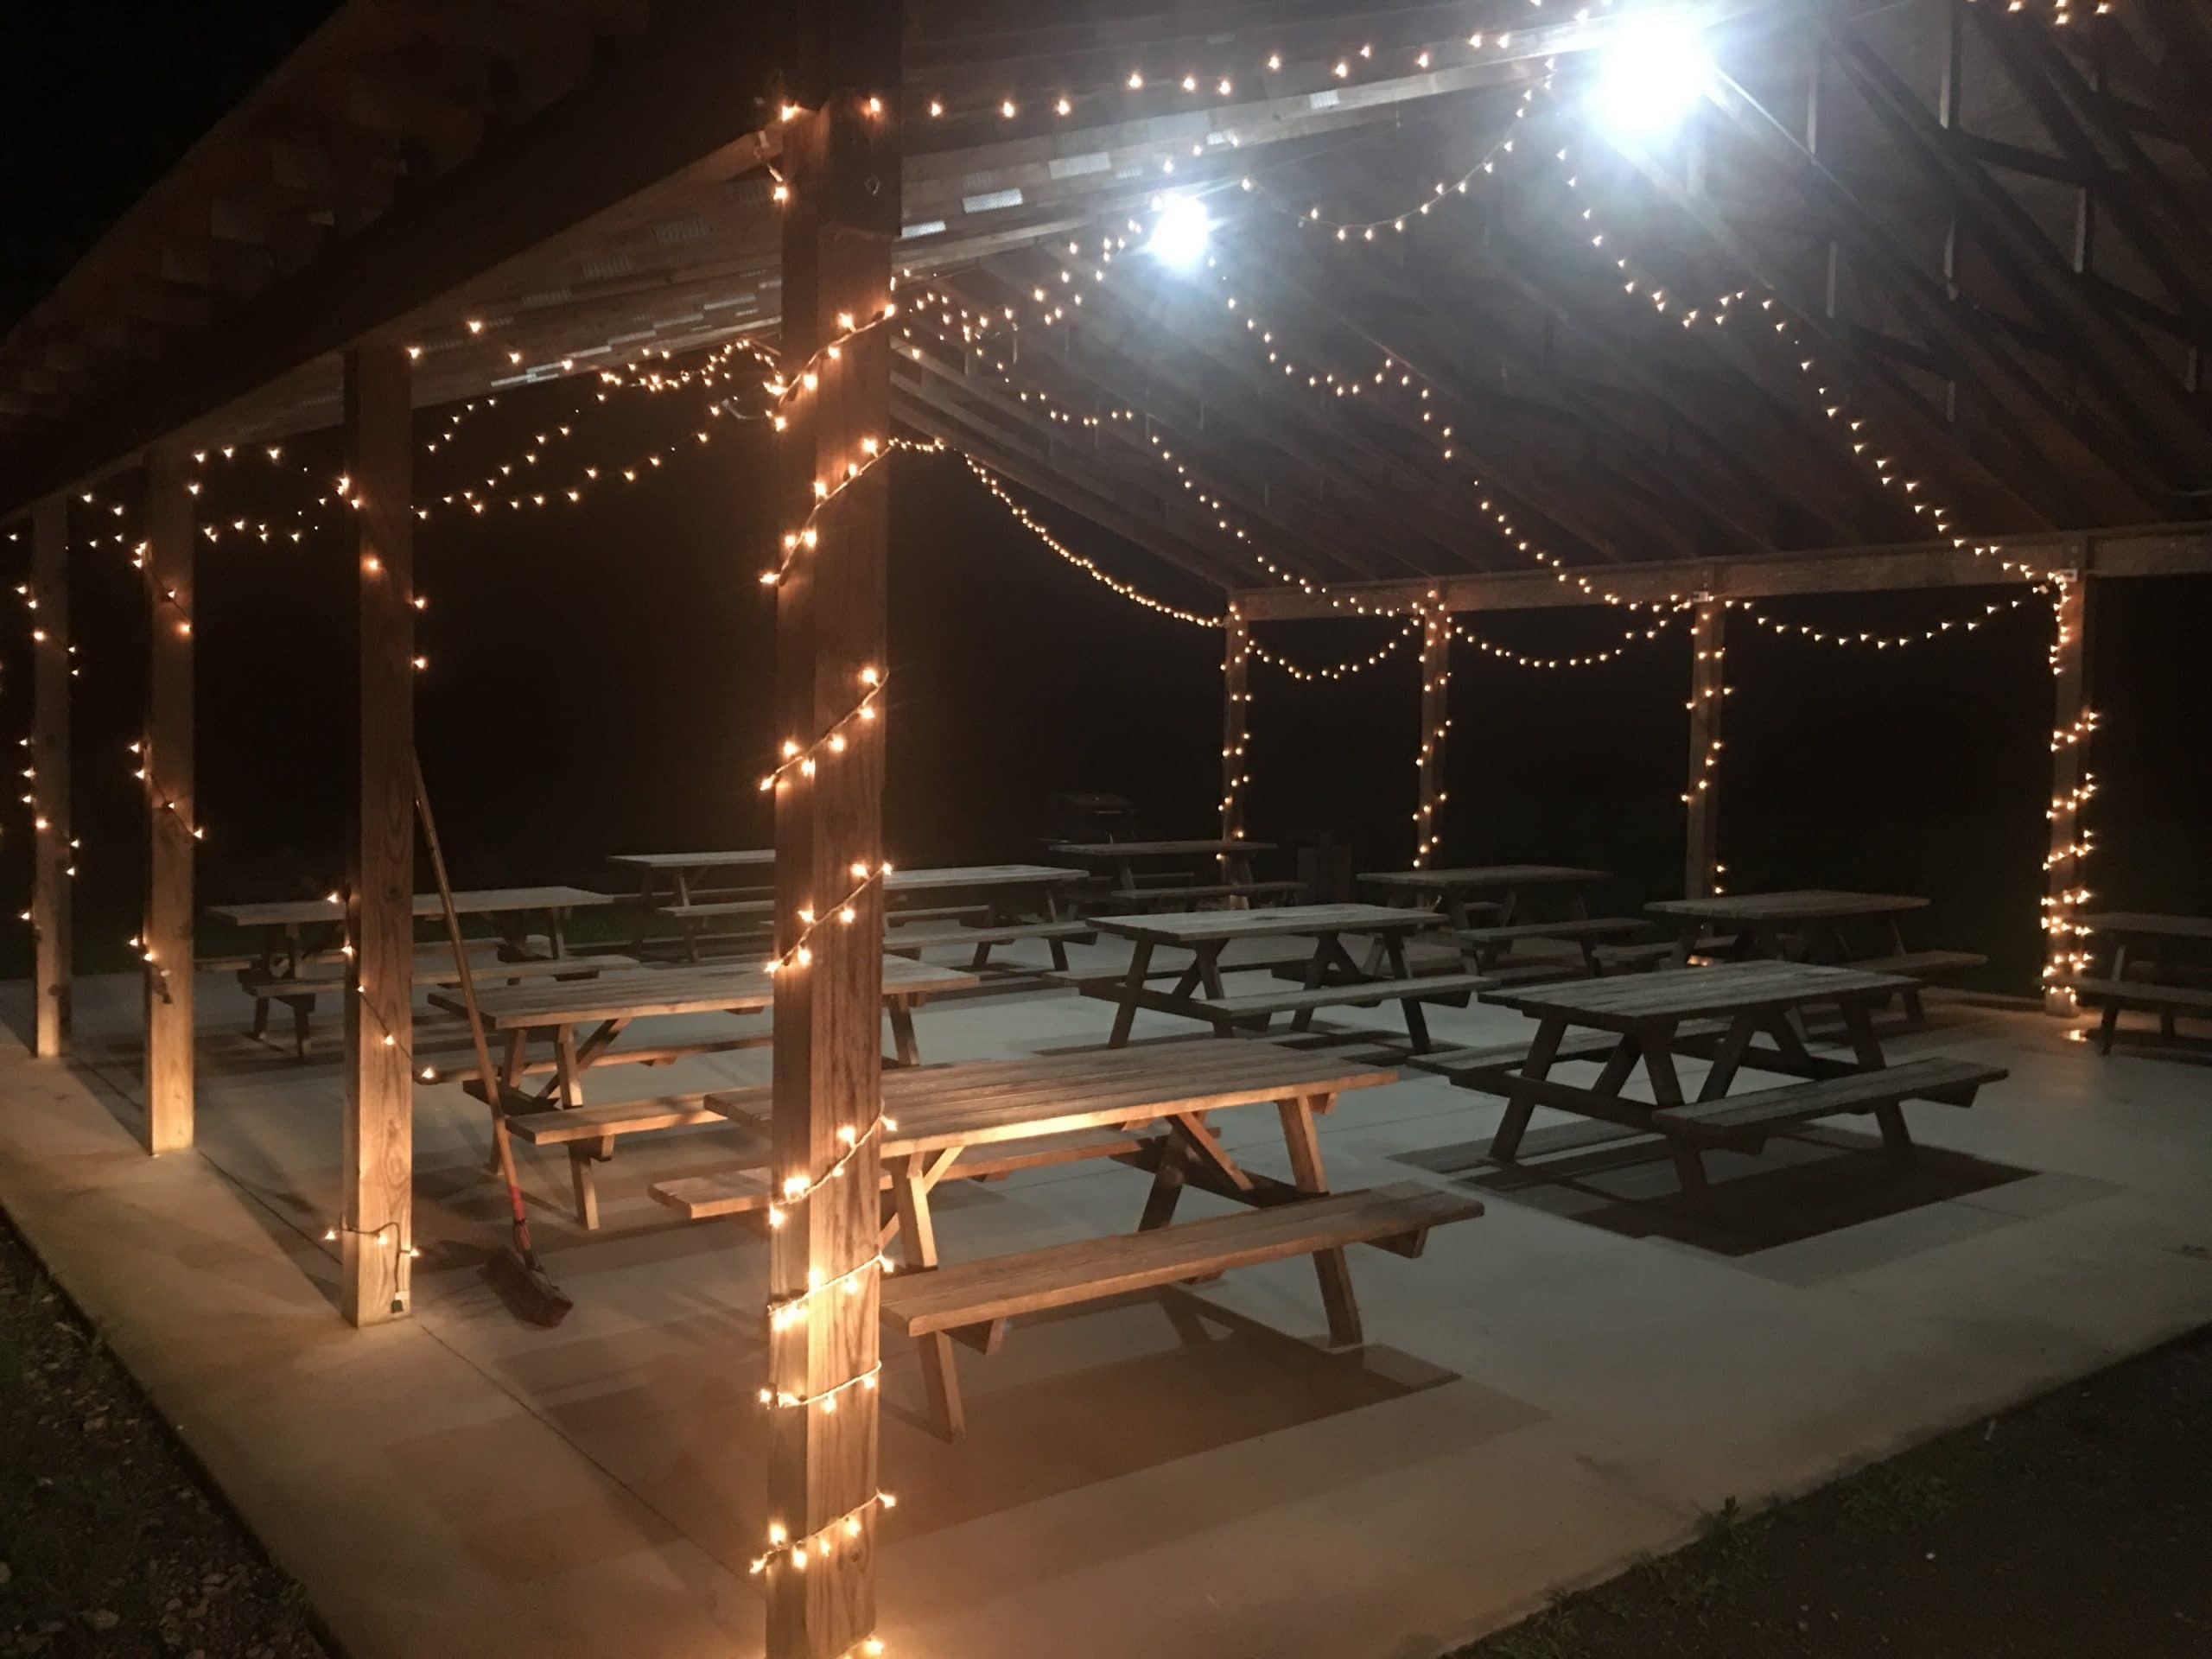 Lighted pavilion with 11 picnic tables